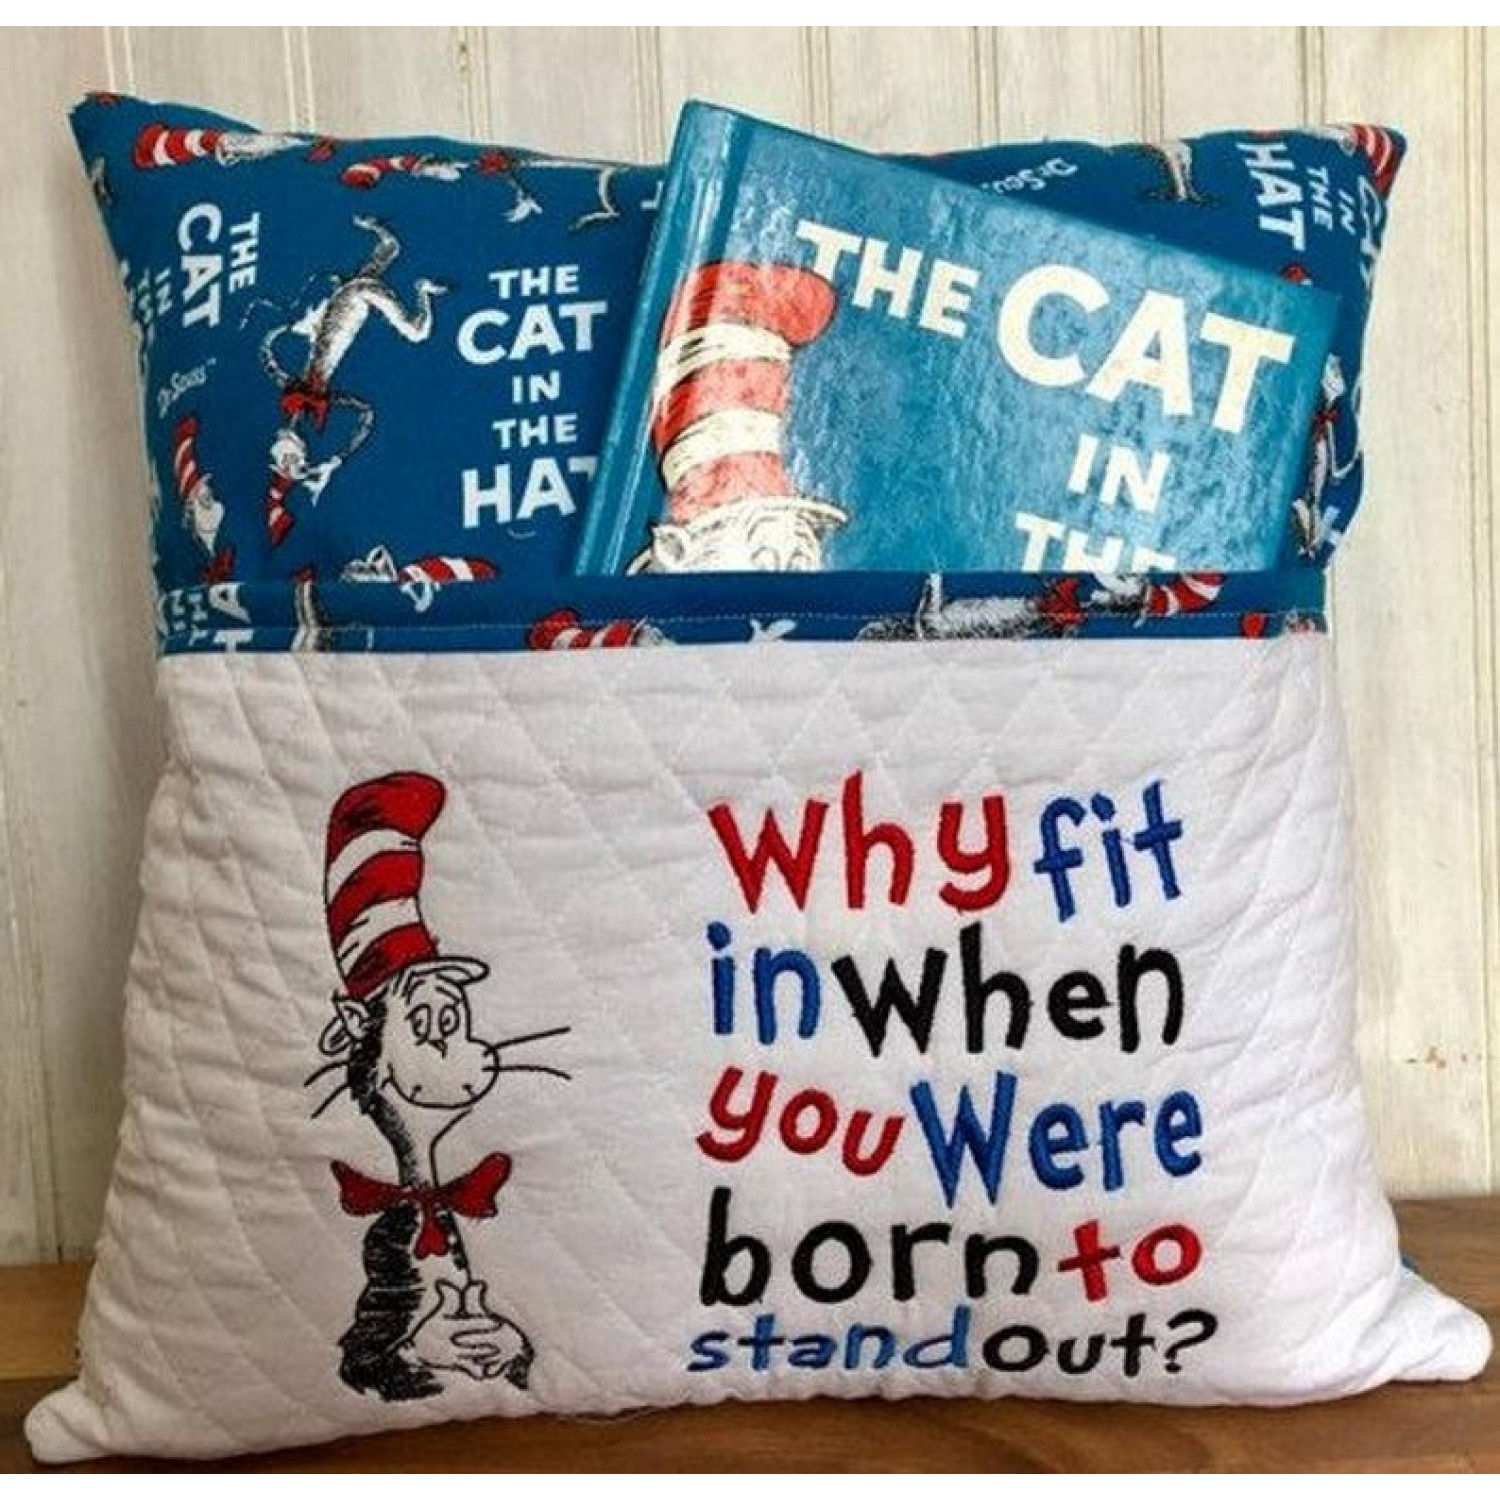 Dr. Seuss embroidery with why fit 2 designs 3 sizes